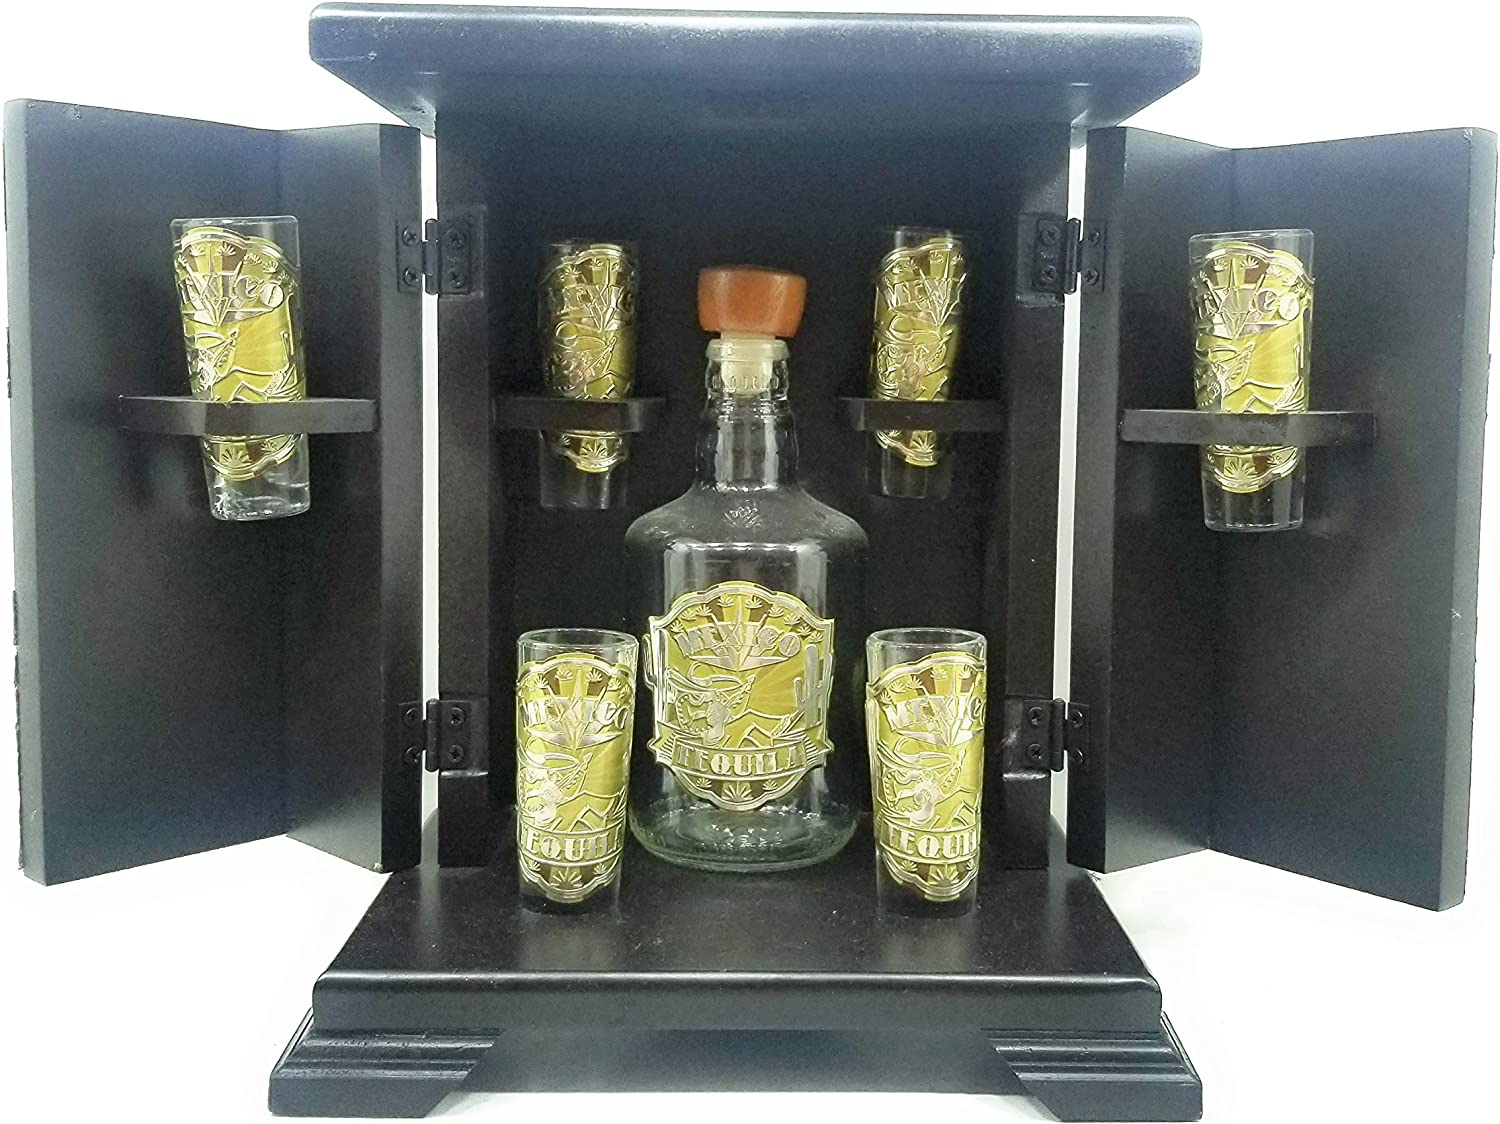 Made in America Hand Crafted Fortaleza Tequila Ashtray Upcycled Candy Dish Veteran Owned Business. Groomsmen Gift Gift for Dad